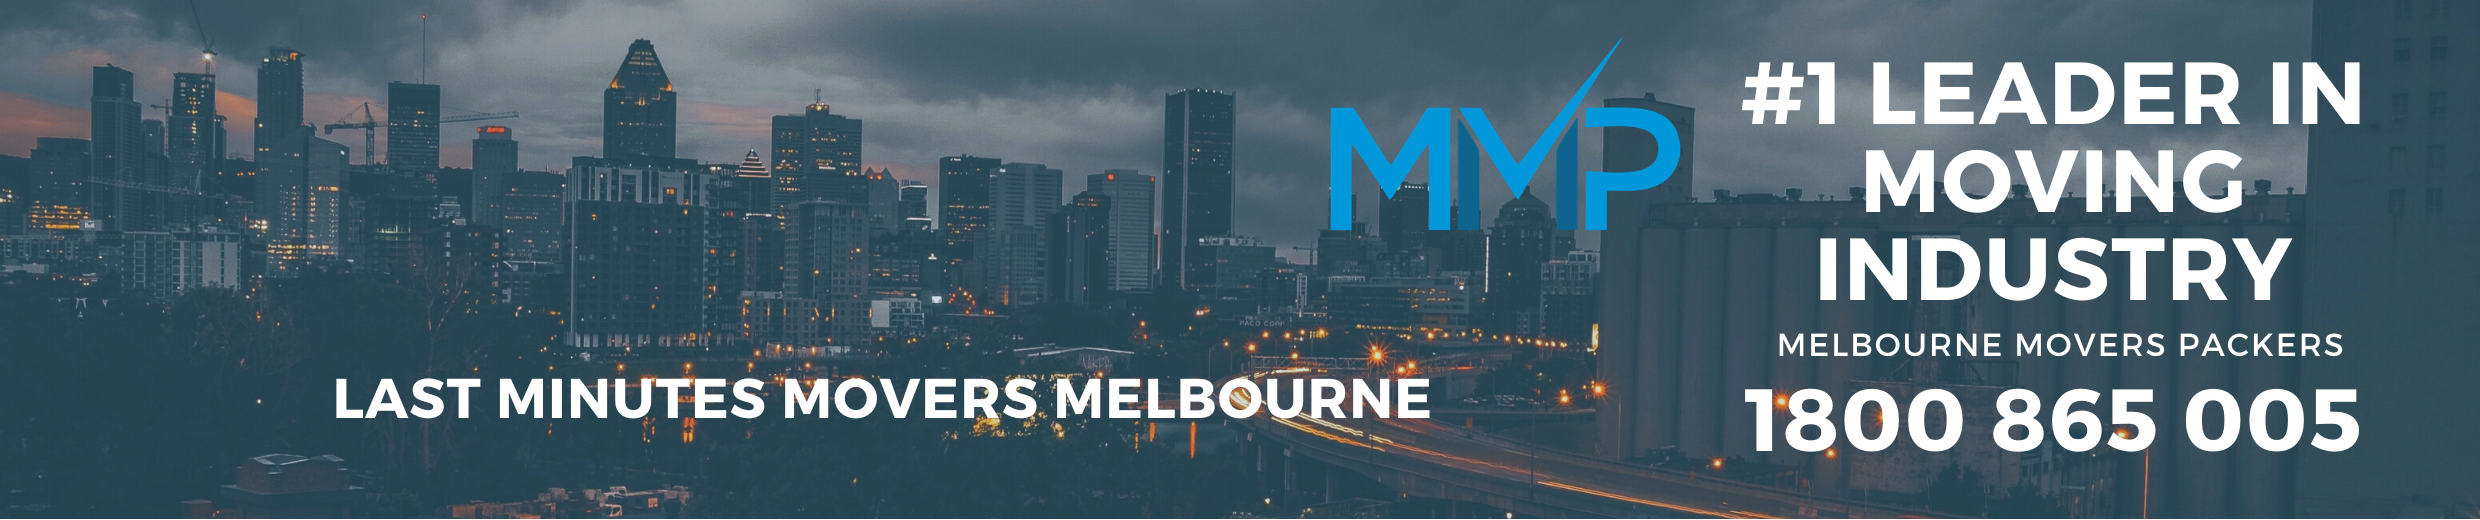 Last Minute Movers Melbourne